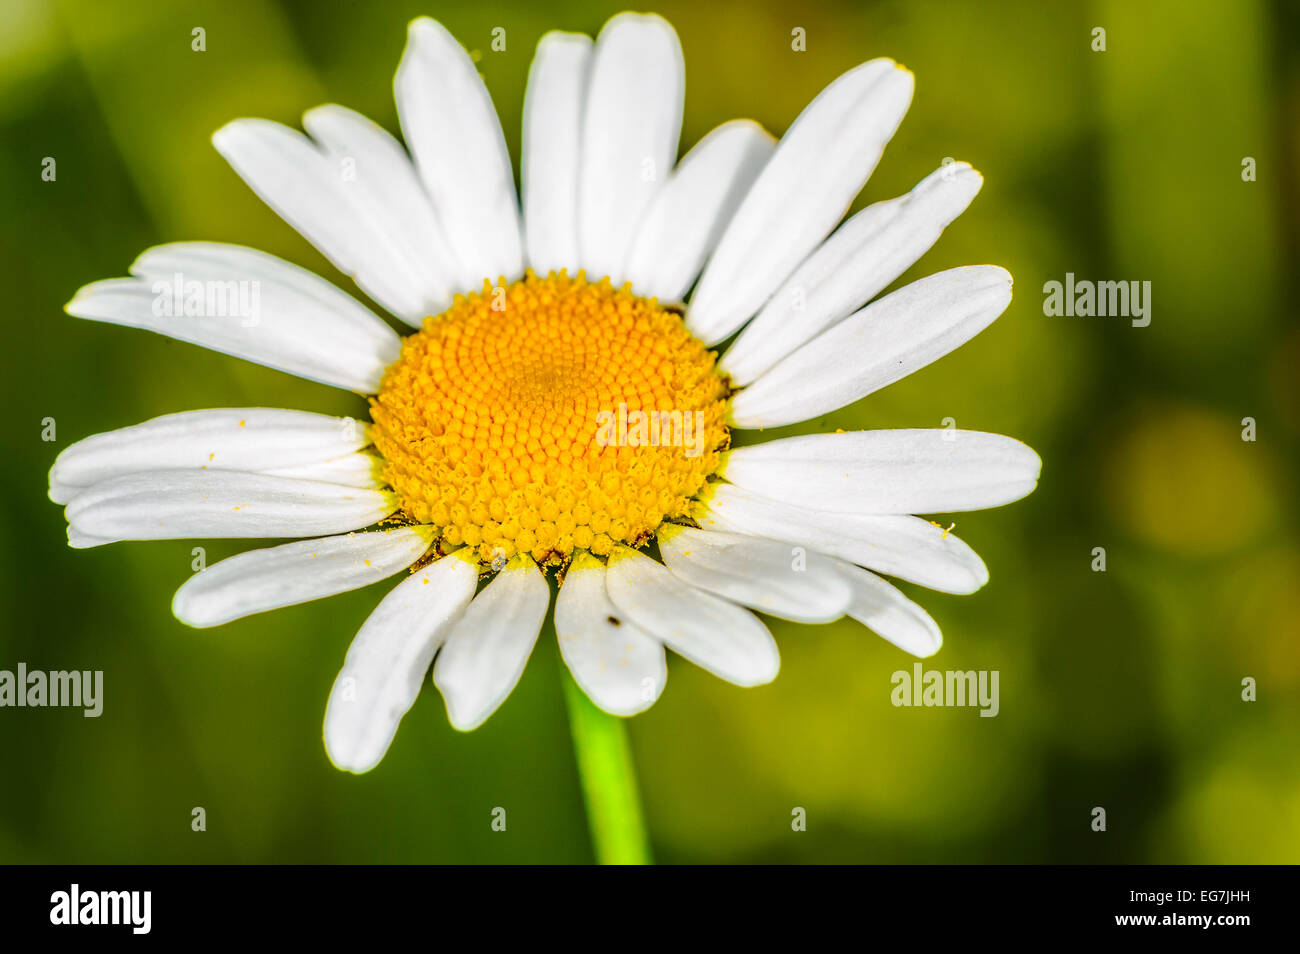 Daisy head and petals with an organic natural green background Stock Photo